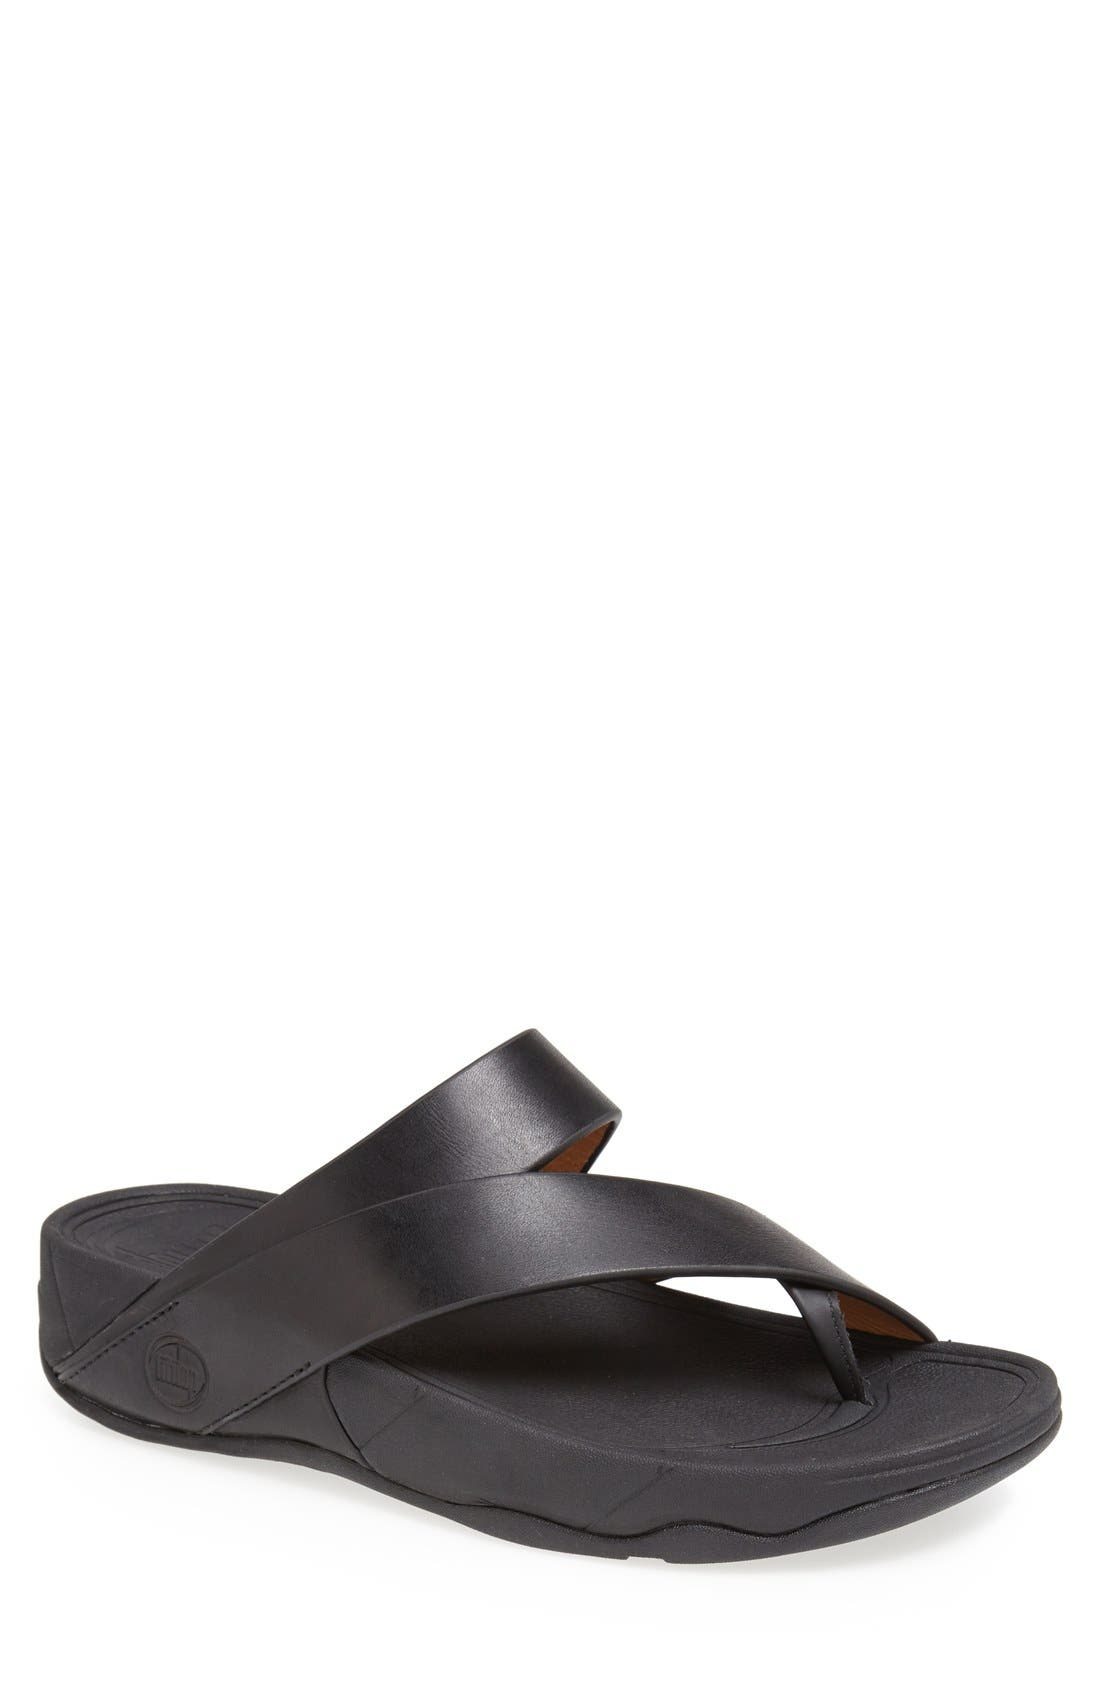 Main Image - FitFlop 'Sling' Leather Sandal (Men)